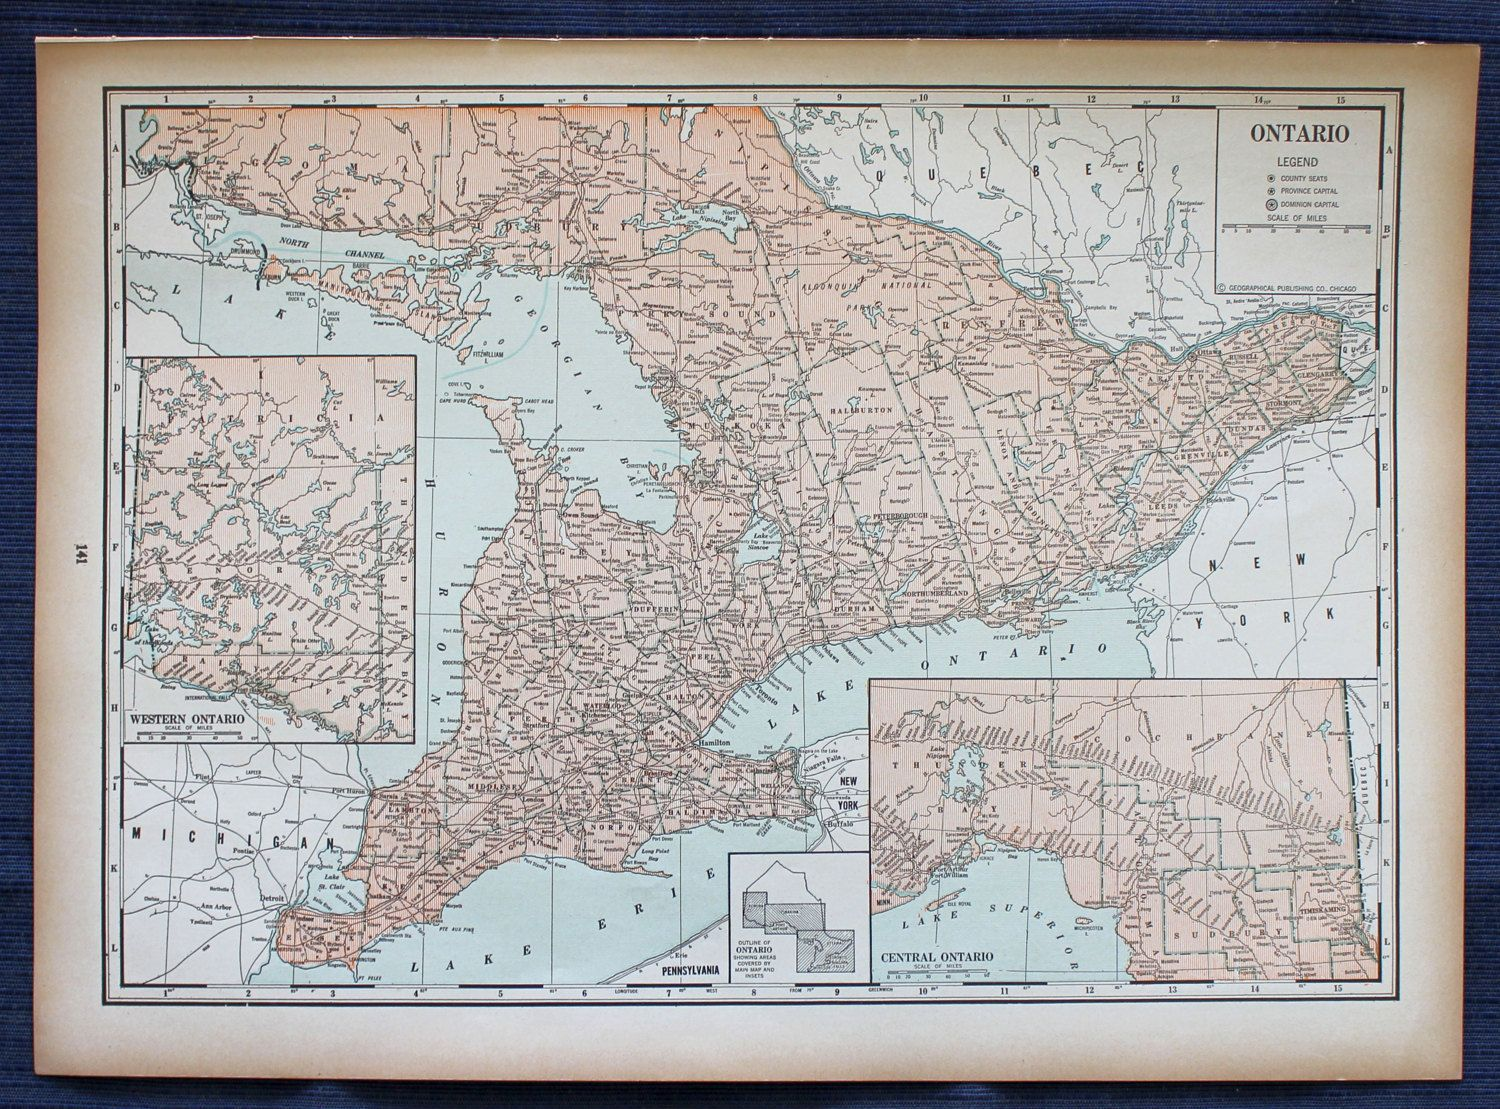 Ontario map or quebec map large map 1941 new international atlas 1941 ontario map or quebec map large map new international atlas of the world vintage by passinthrutime on etsy gumiabroncs Images